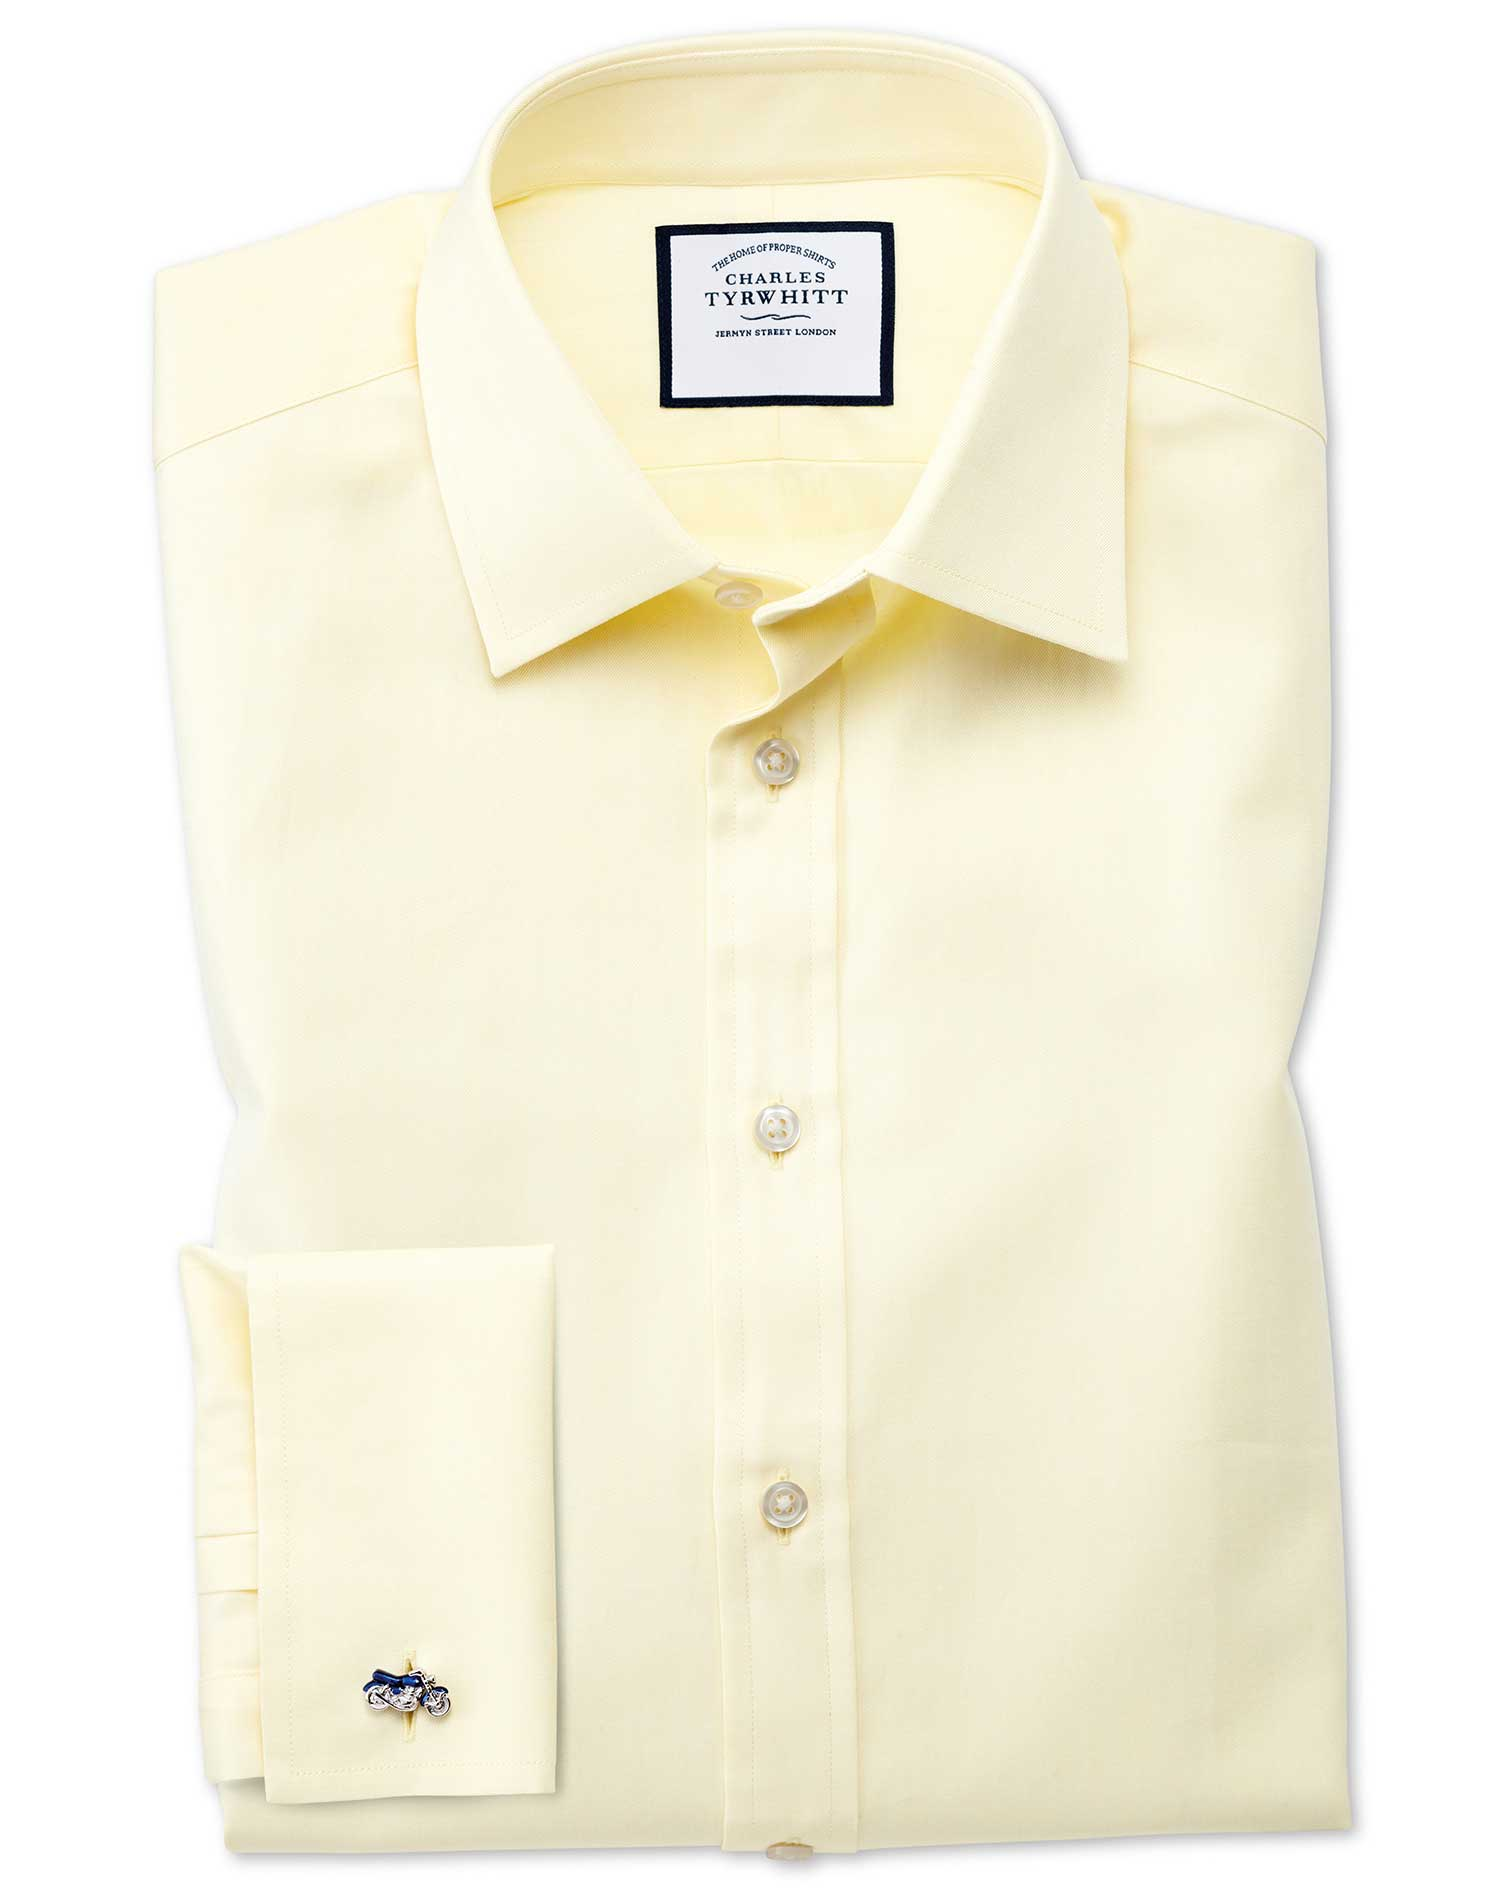 Classic Fit Fine Herringbone Yellow Cotton Formal Shirt Double Cuff Size 17/36 by Charles Tyrwhitt